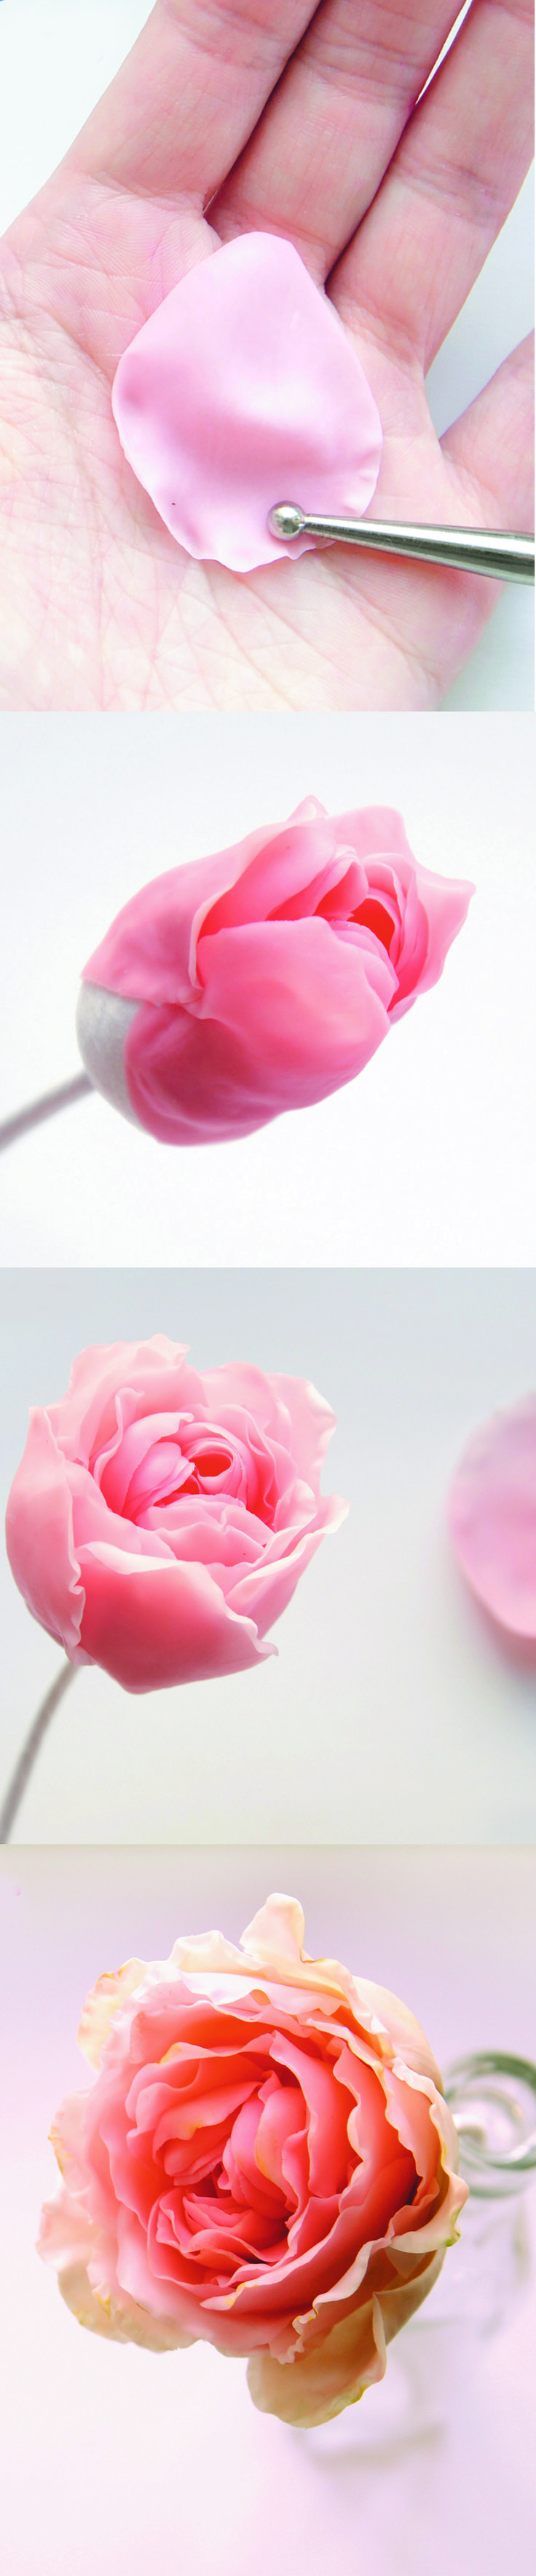 DIY Rose of polymer clay. #PhoenixPublishingHouse #handmade #polymerclay                                                                                                                                                      More